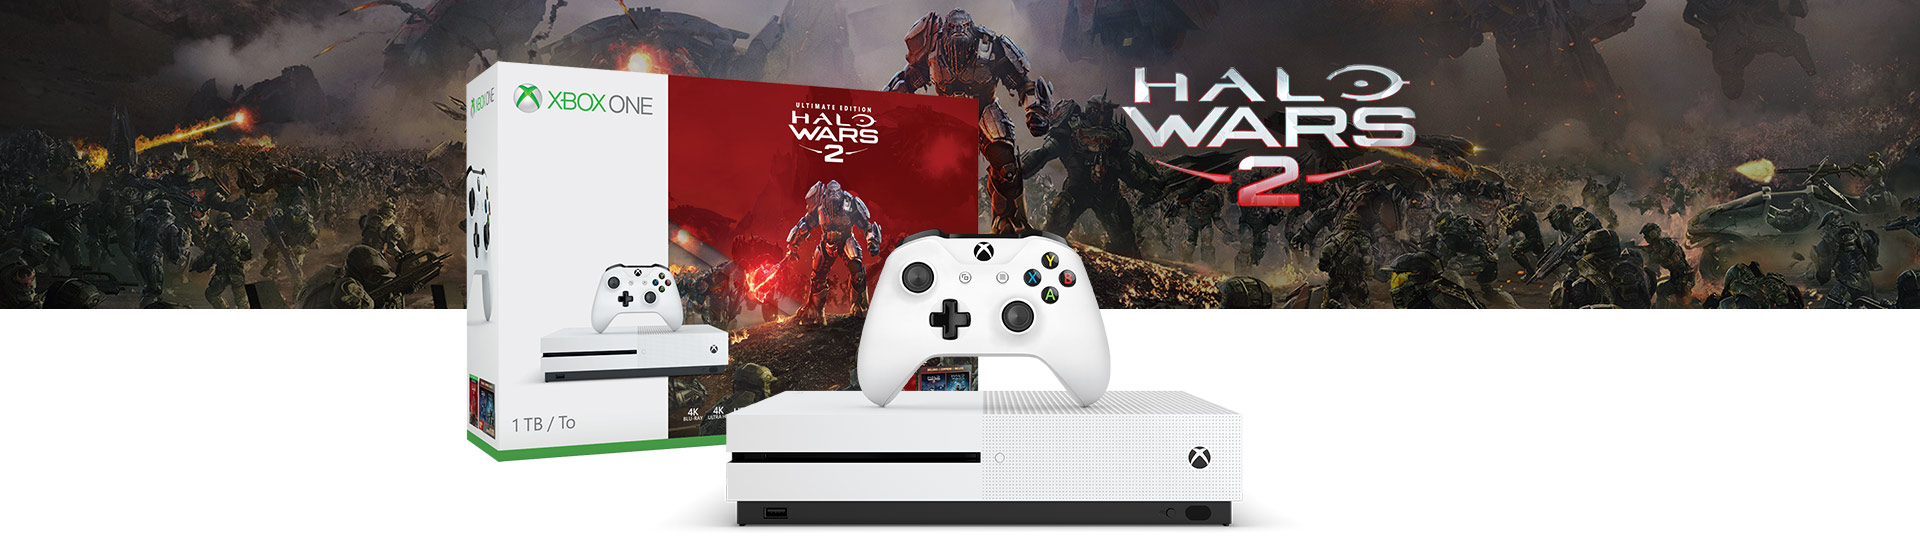 Pakiet Xbox One S Halo Wars 2